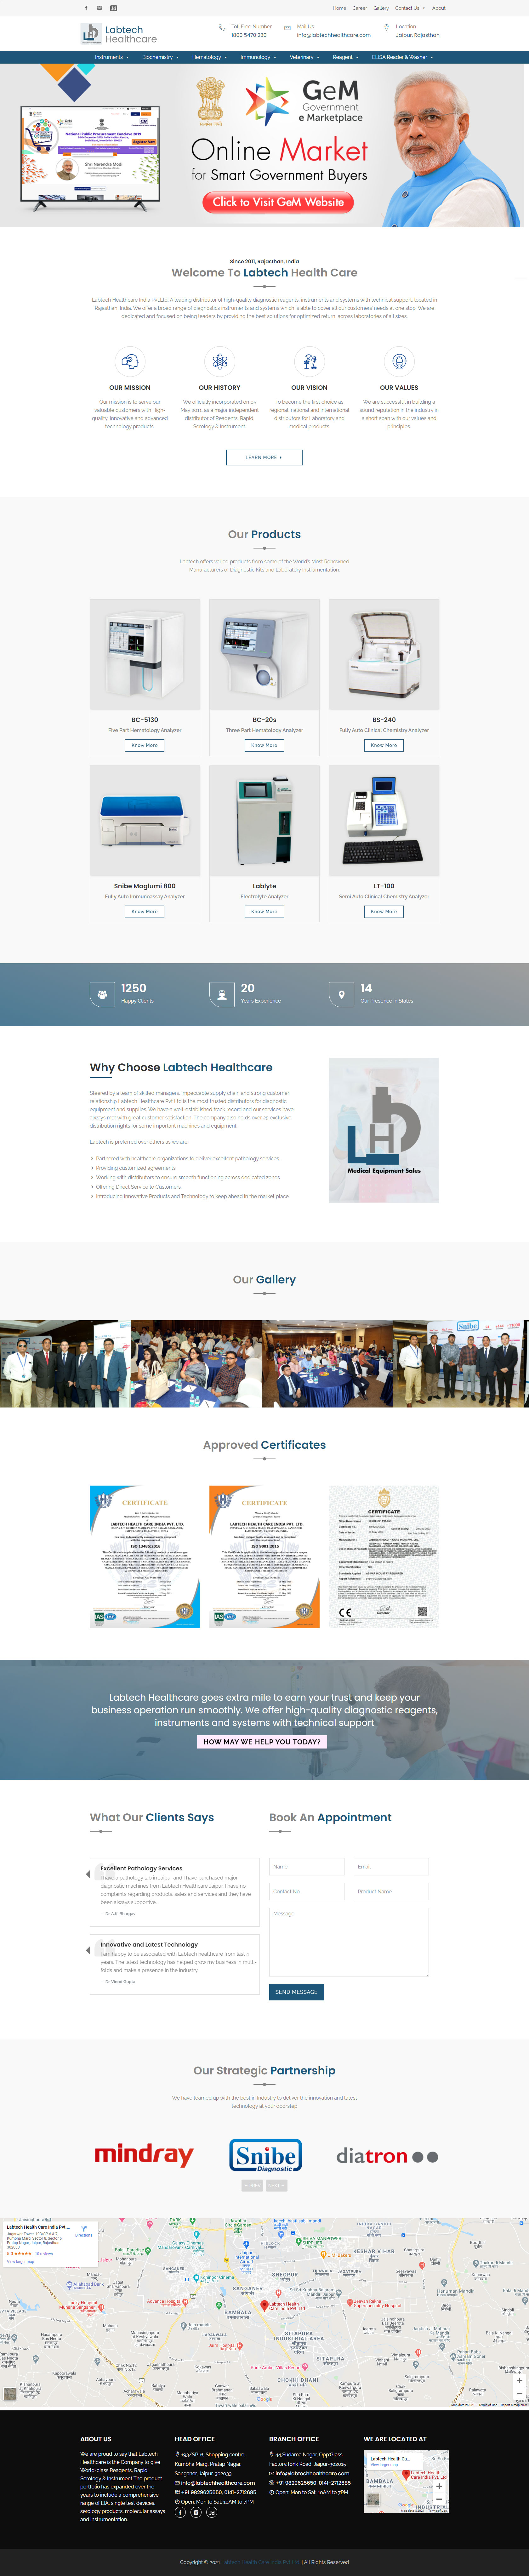 Labtech Healthcare India Pvt.Ltd